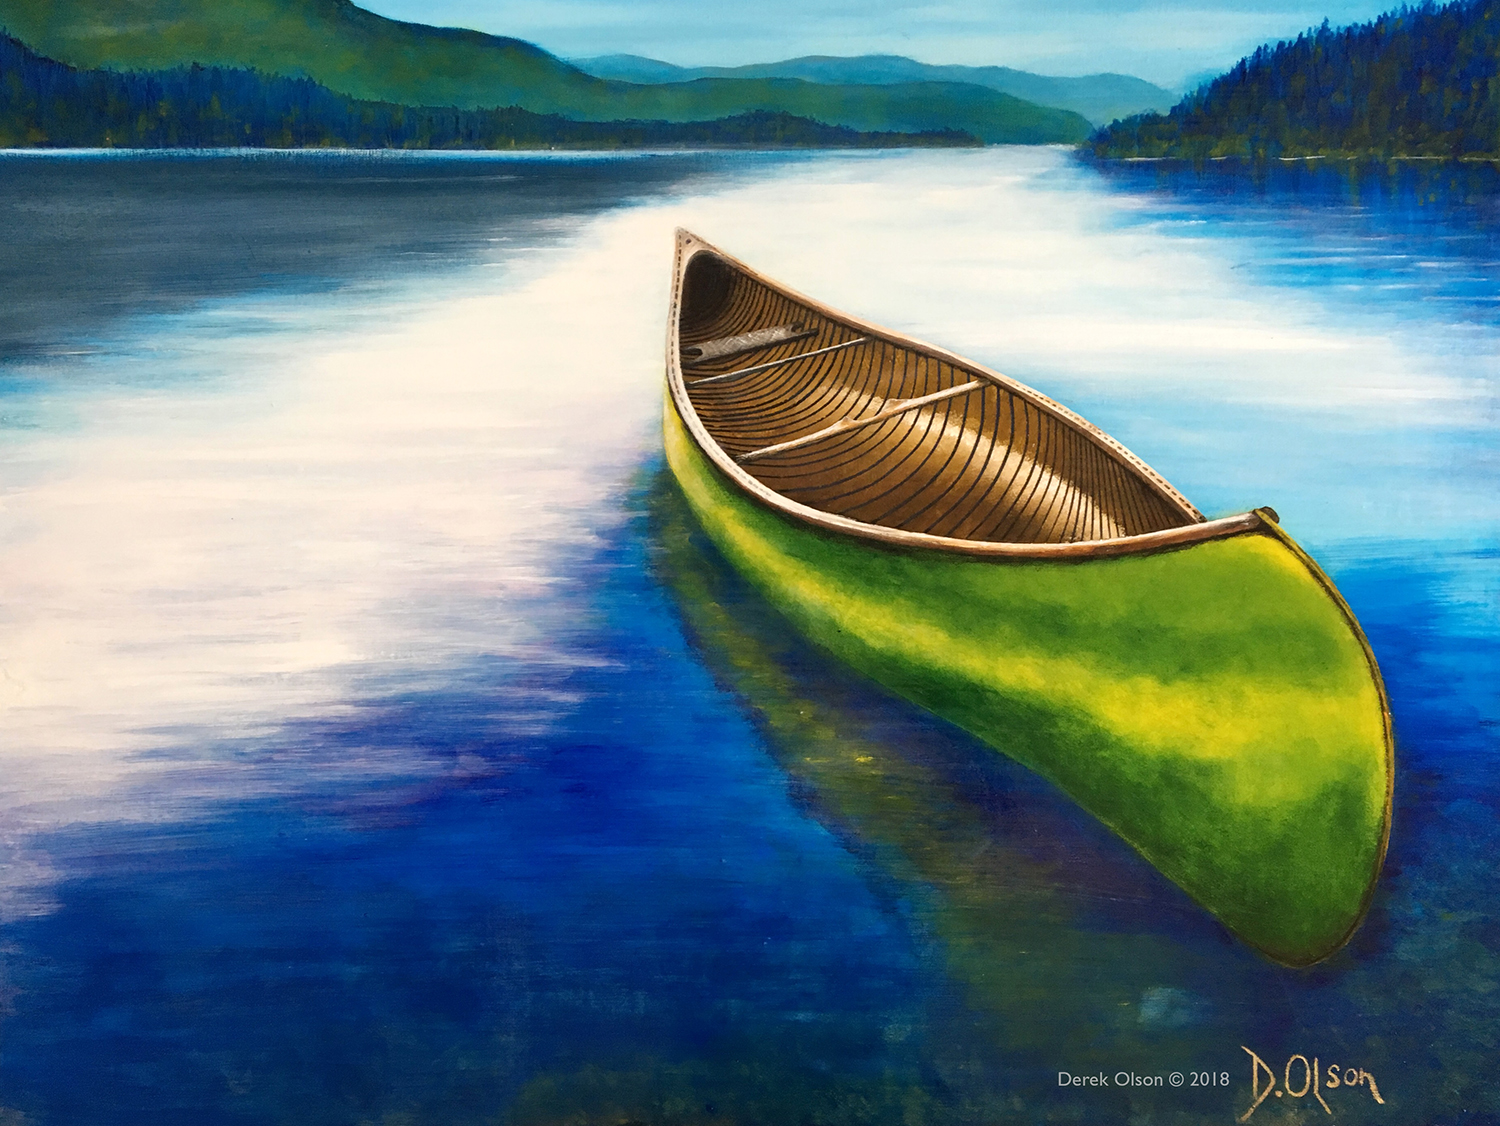 Surreal painting of canoe sitting on mountain lake with no passengers.